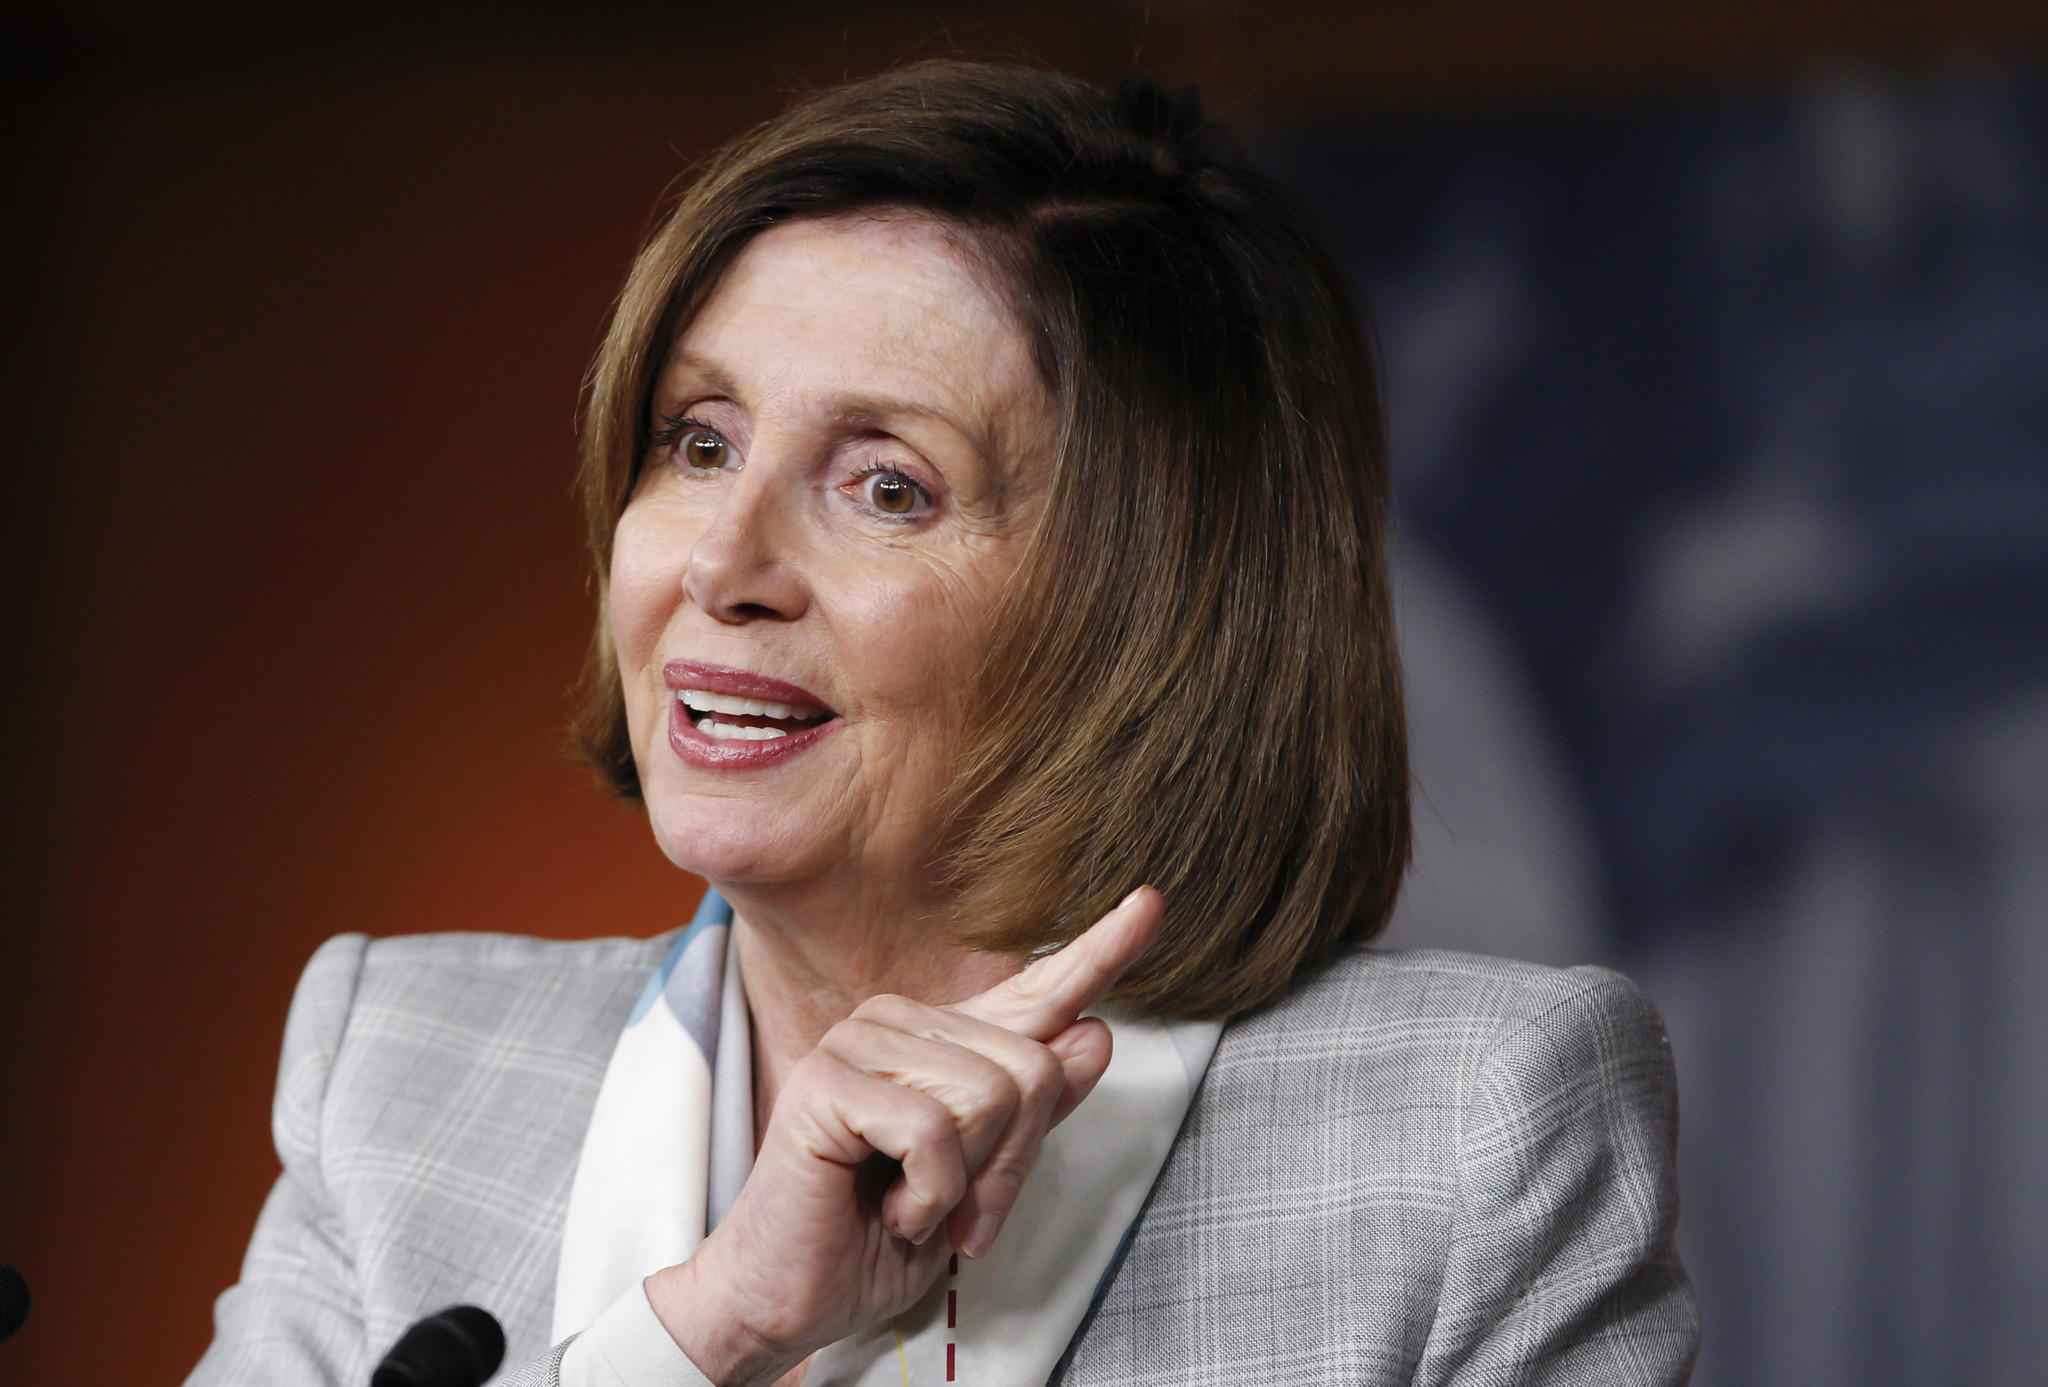 House Minority Leader Nancy Pelosi said she plans to vote for Proposition 64. (J. Scott Applewhite / Associated Press)